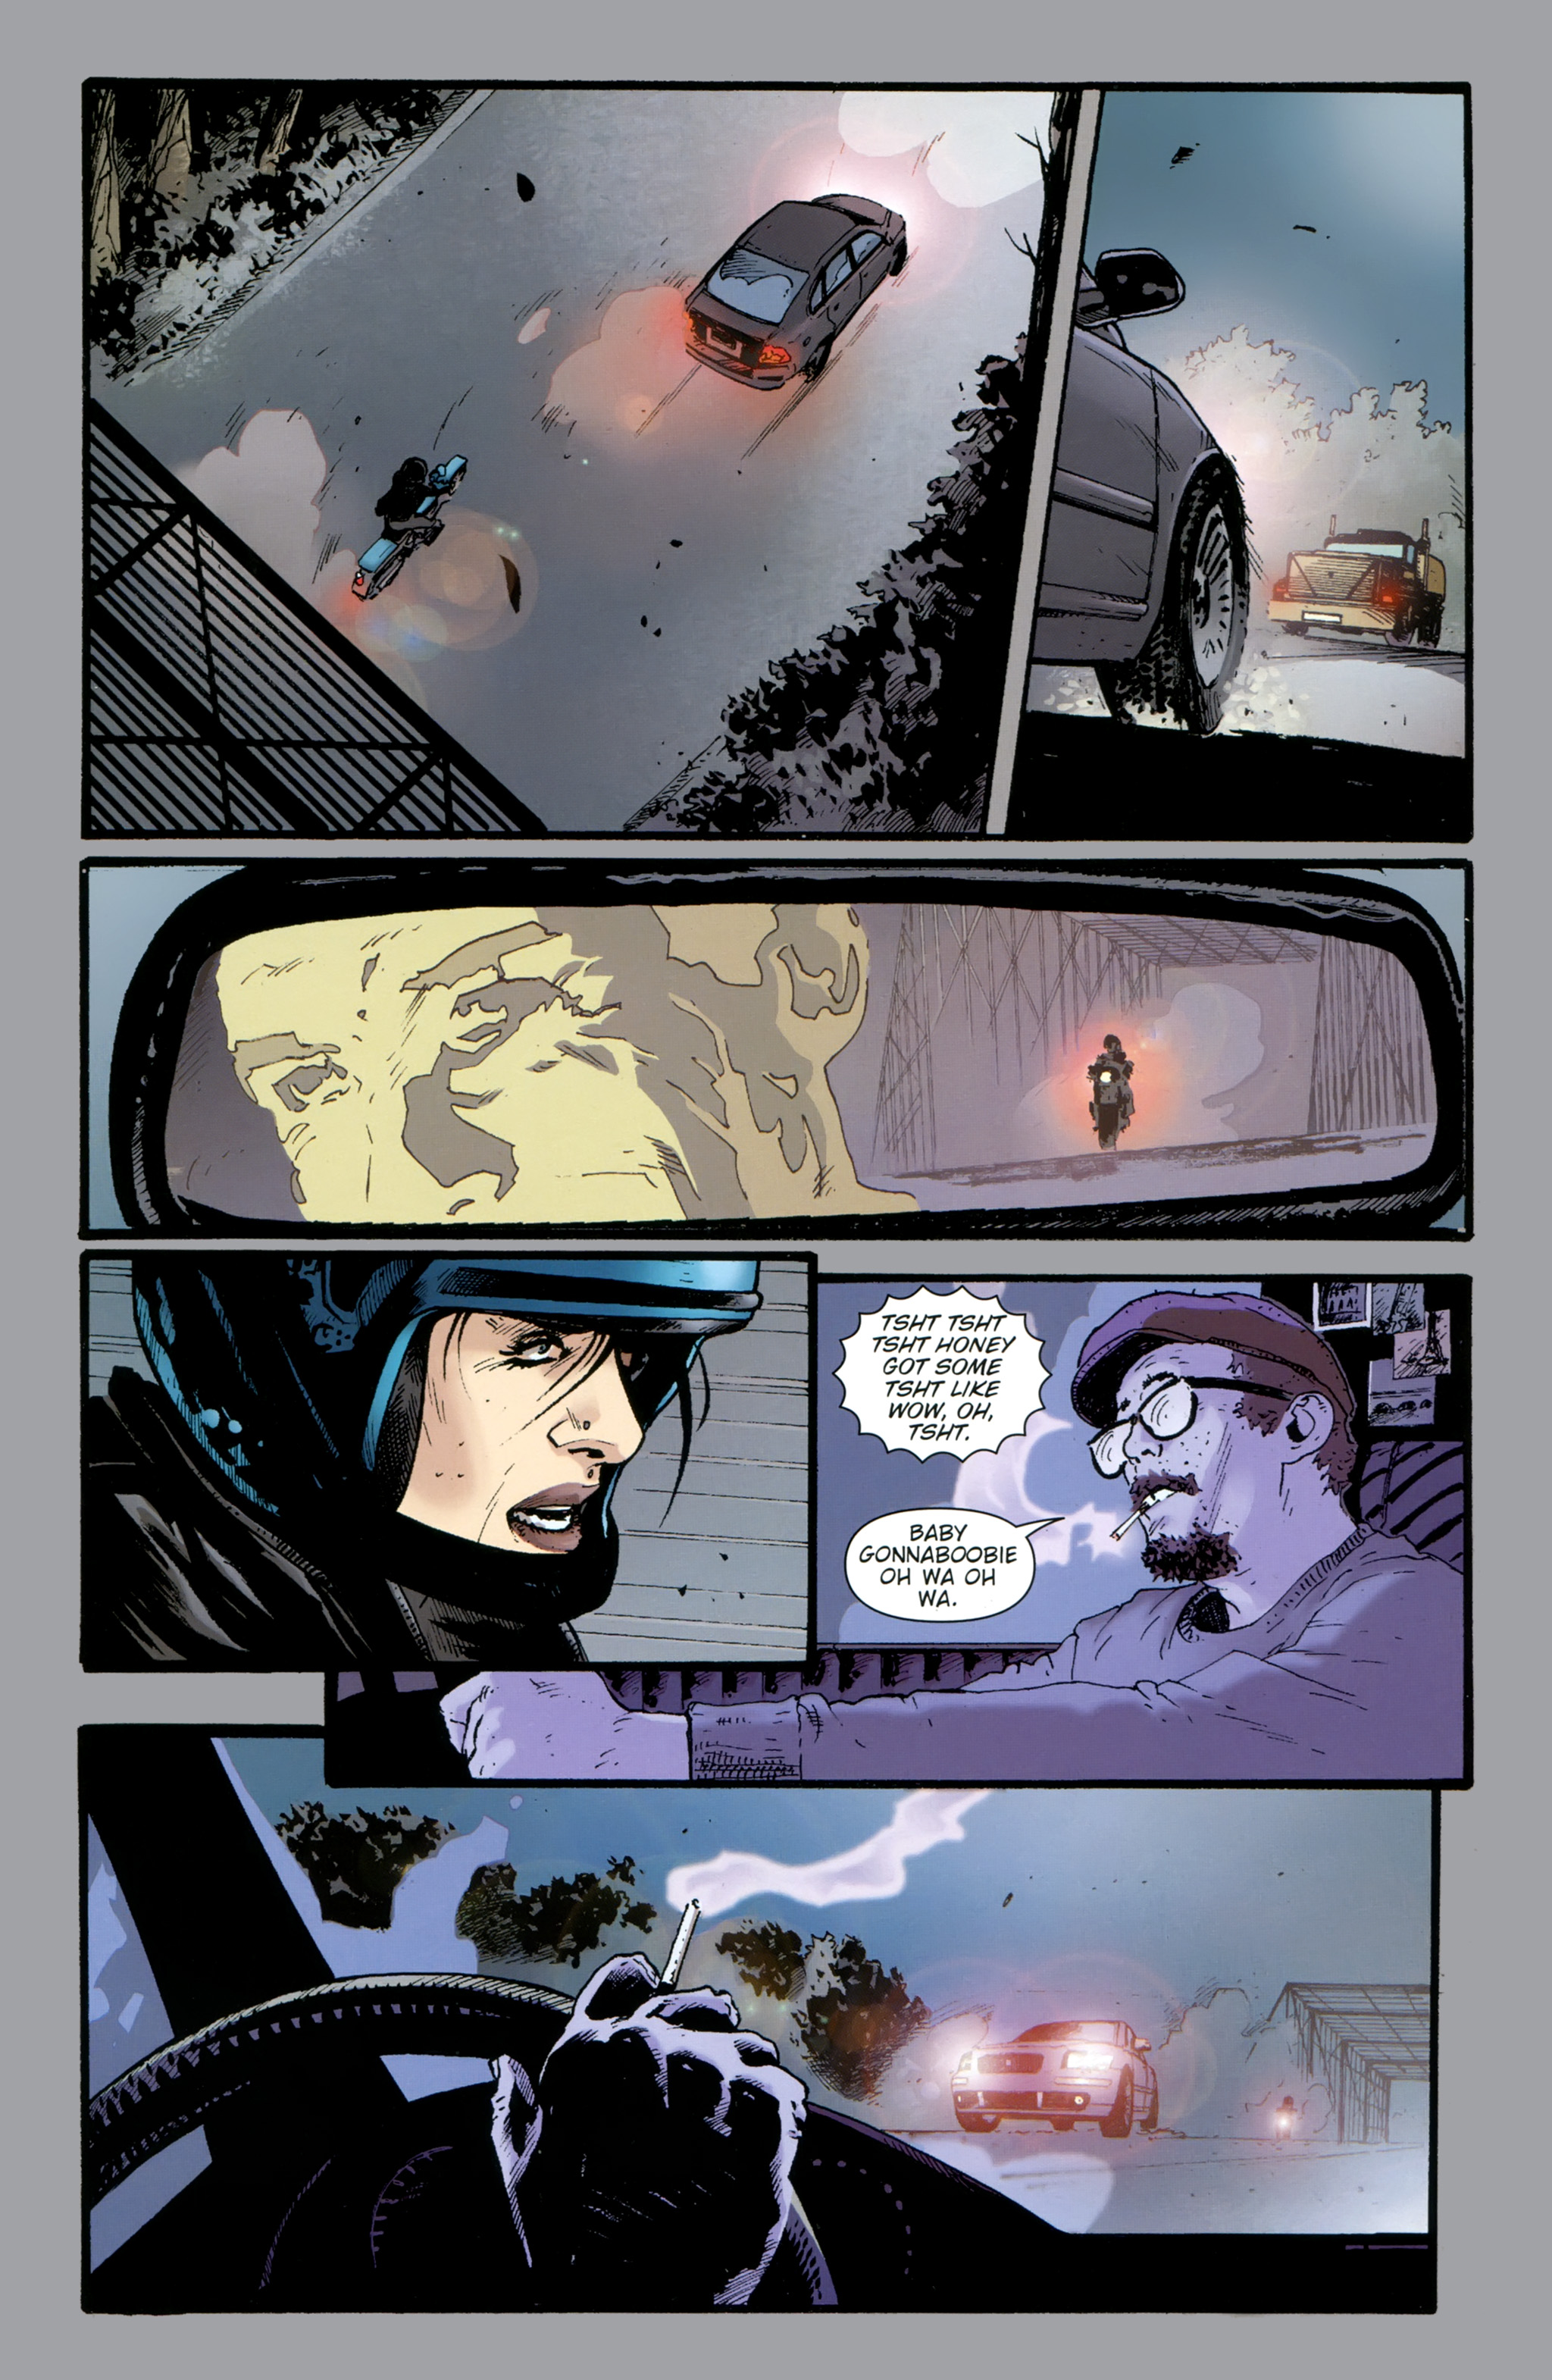 Read online The Girl With the Dragon Tattoo comic -  Issue # TPB 2 - 105